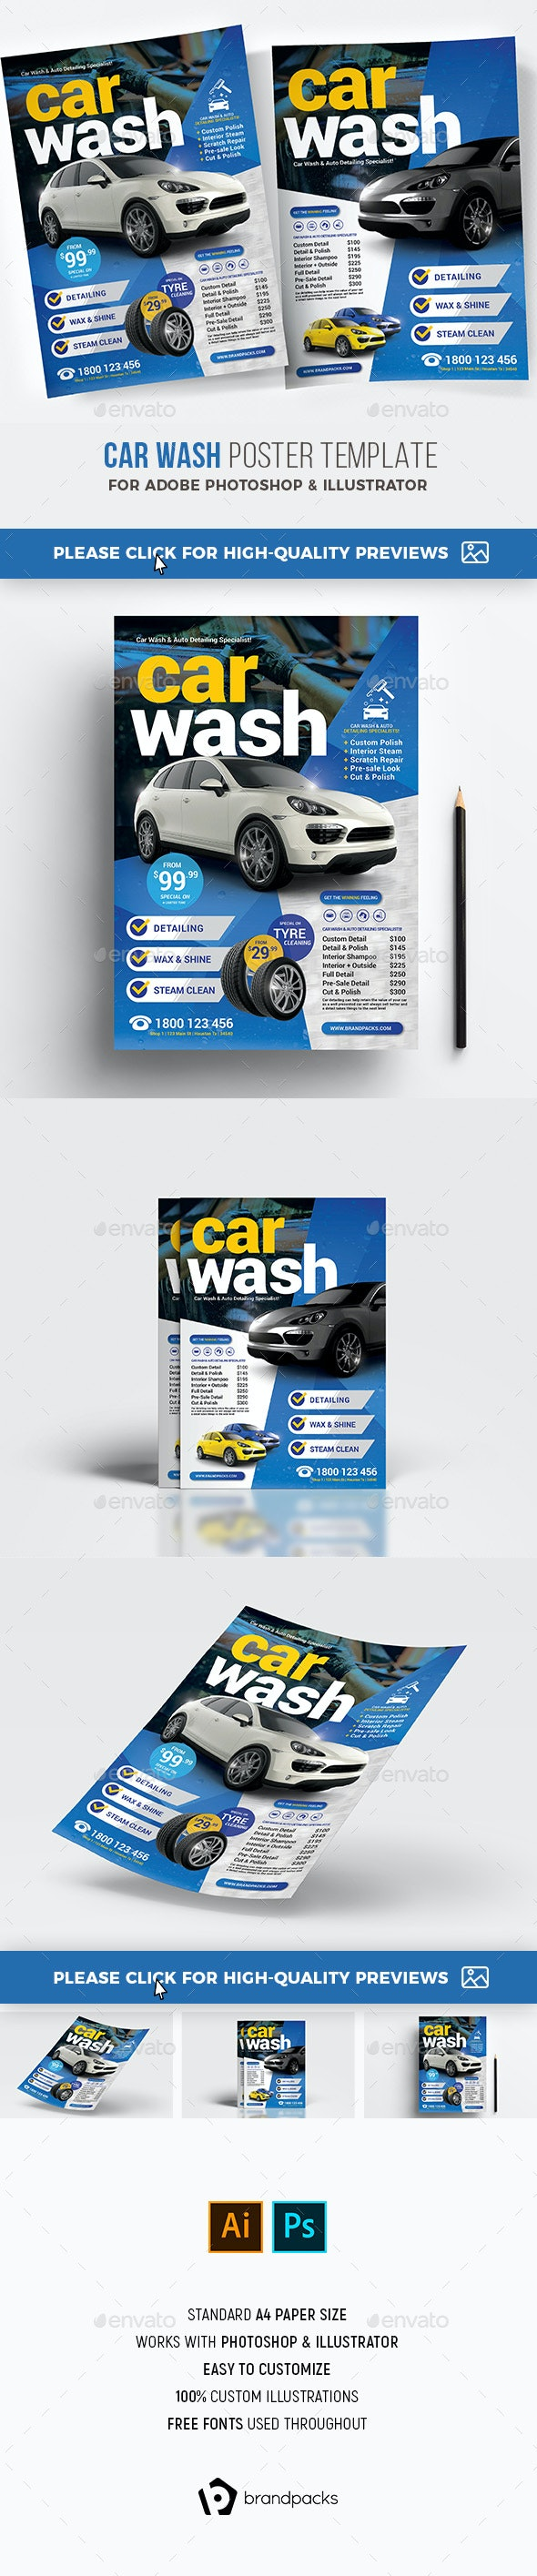 Car Wash Poster / Flyer Template - Corporate Flyers